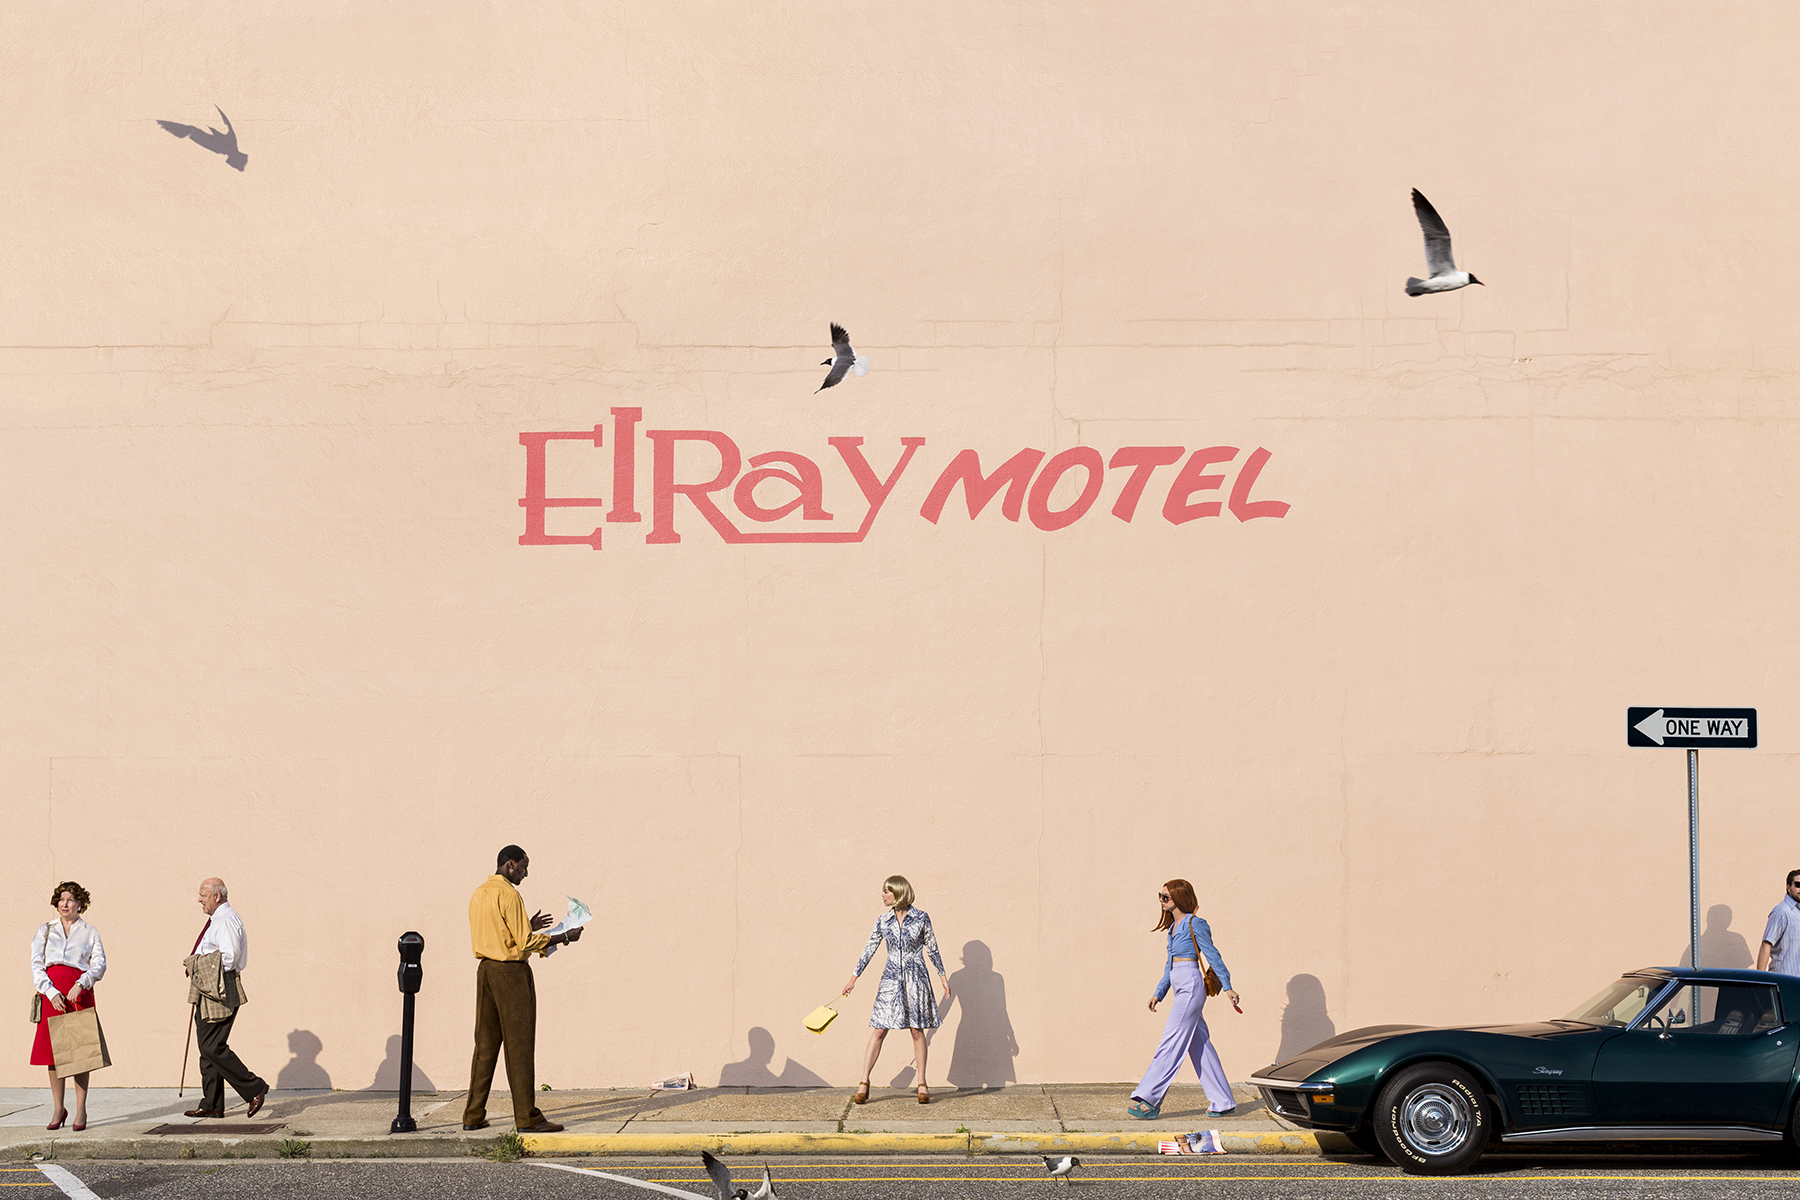 Nadine_Rovner_El Ray Motel, Early Morning_04.jpg